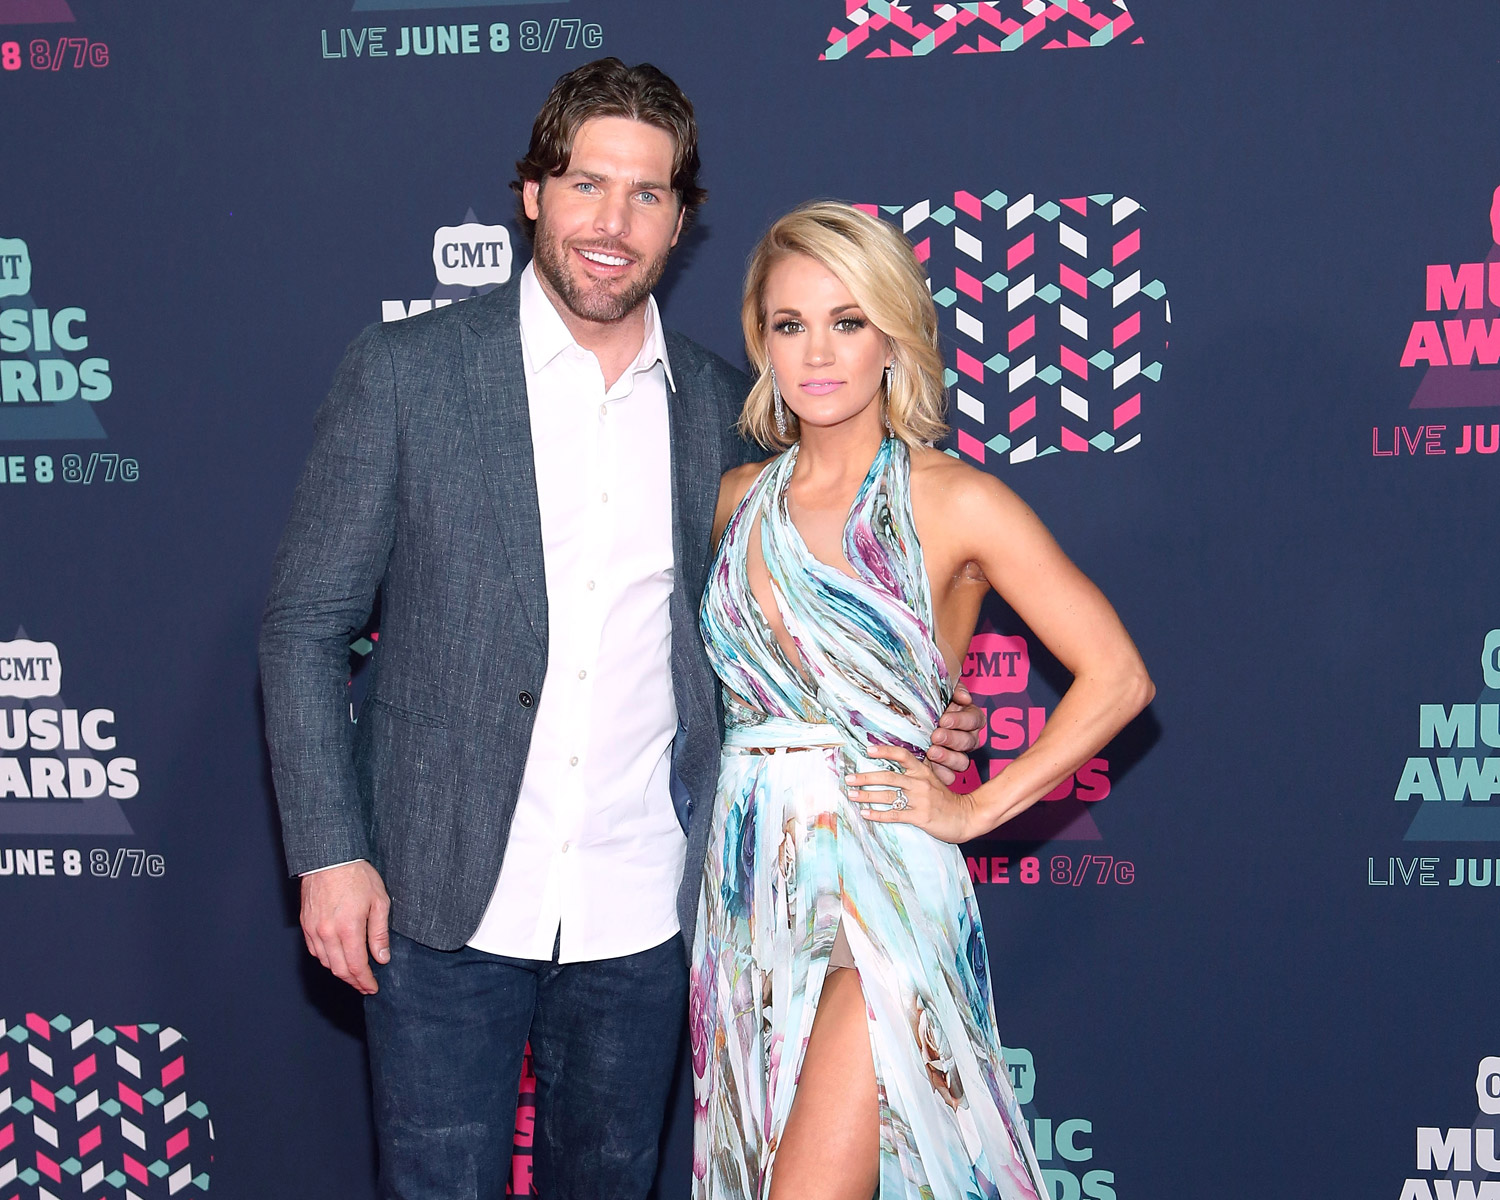 Carrie Underwood Mike Fisher Anniversary